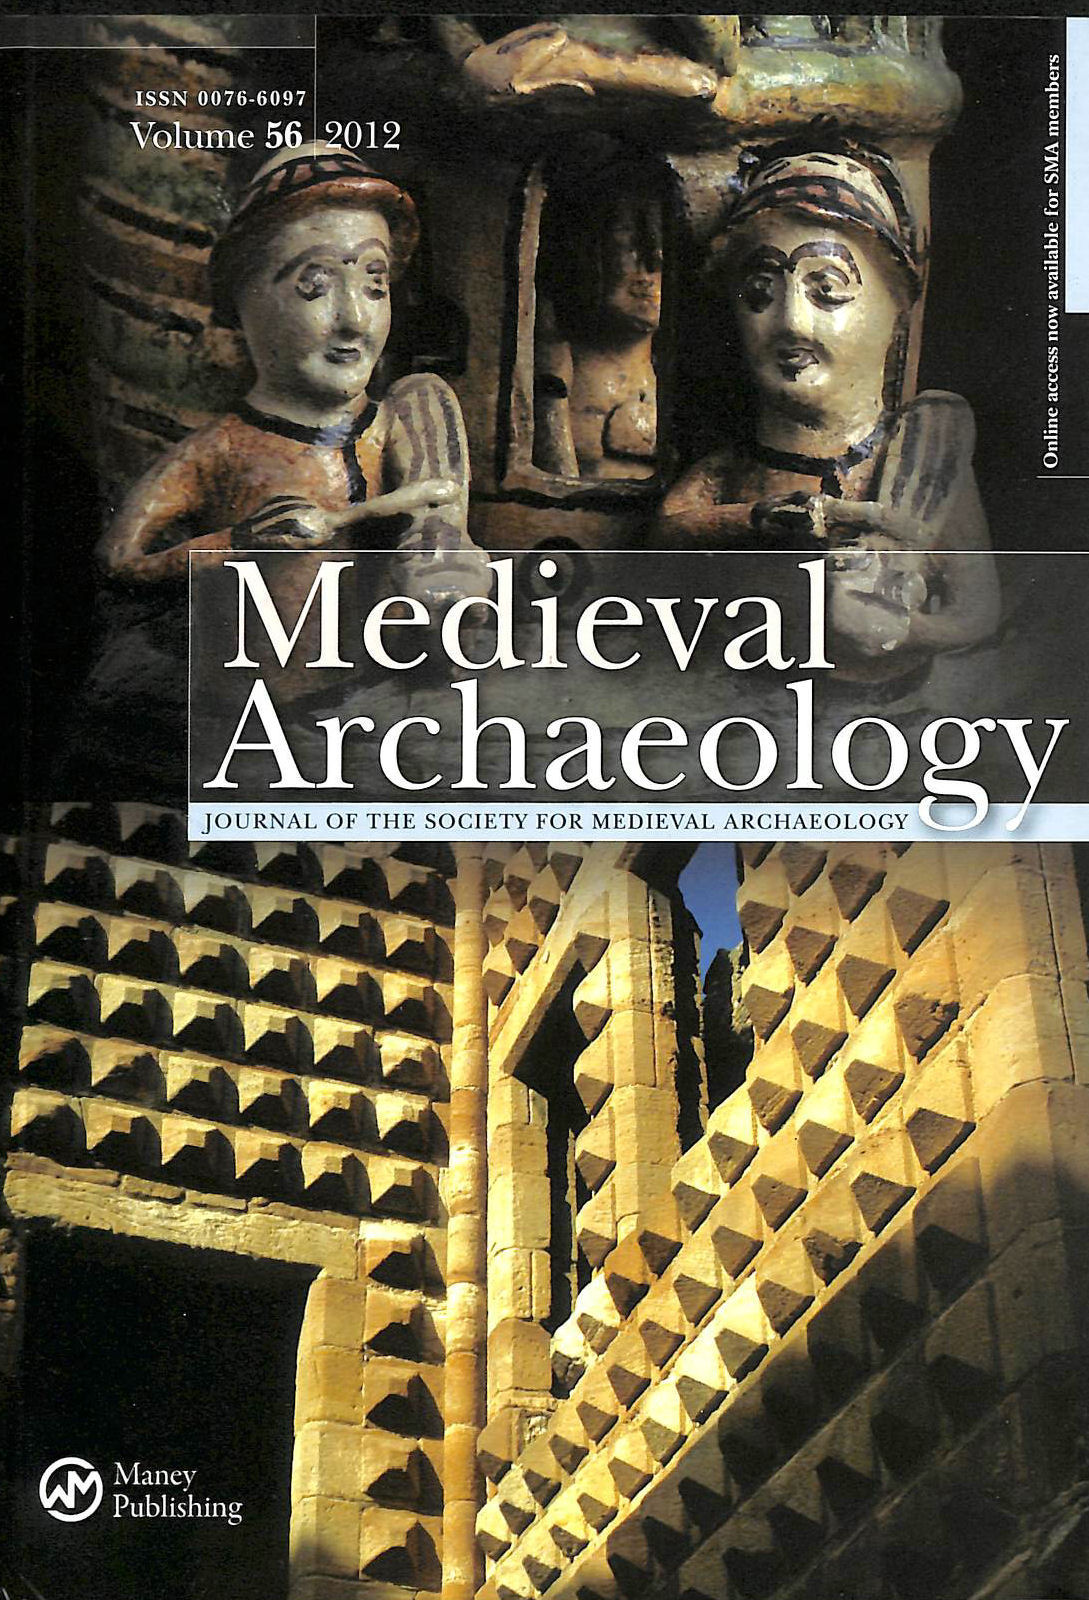 Image for Medieval Archaeology The Journal of the Society for Medieval Archaeology Volume 56 2012